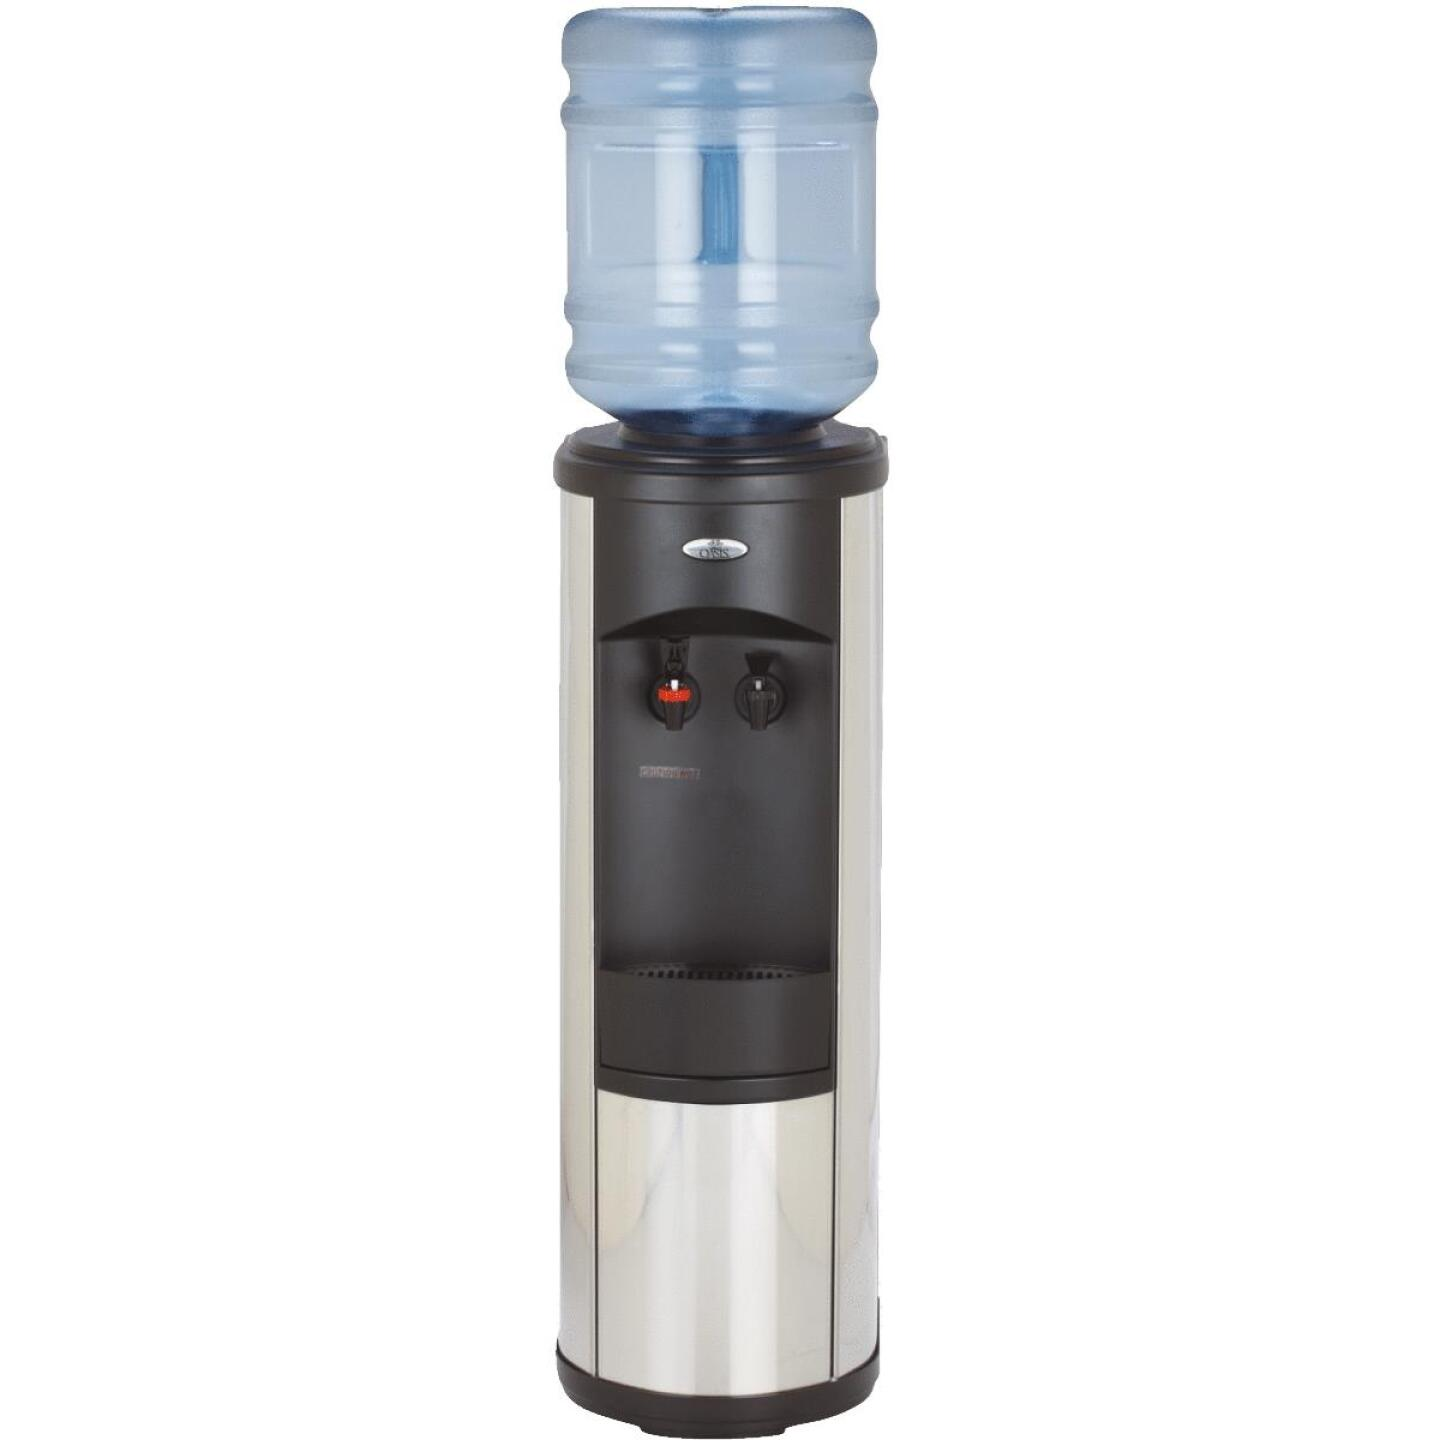 Oasis Artesian Series Residential/Commercial 5/6 Gal. Hot/Cold Water Cooler Image 2